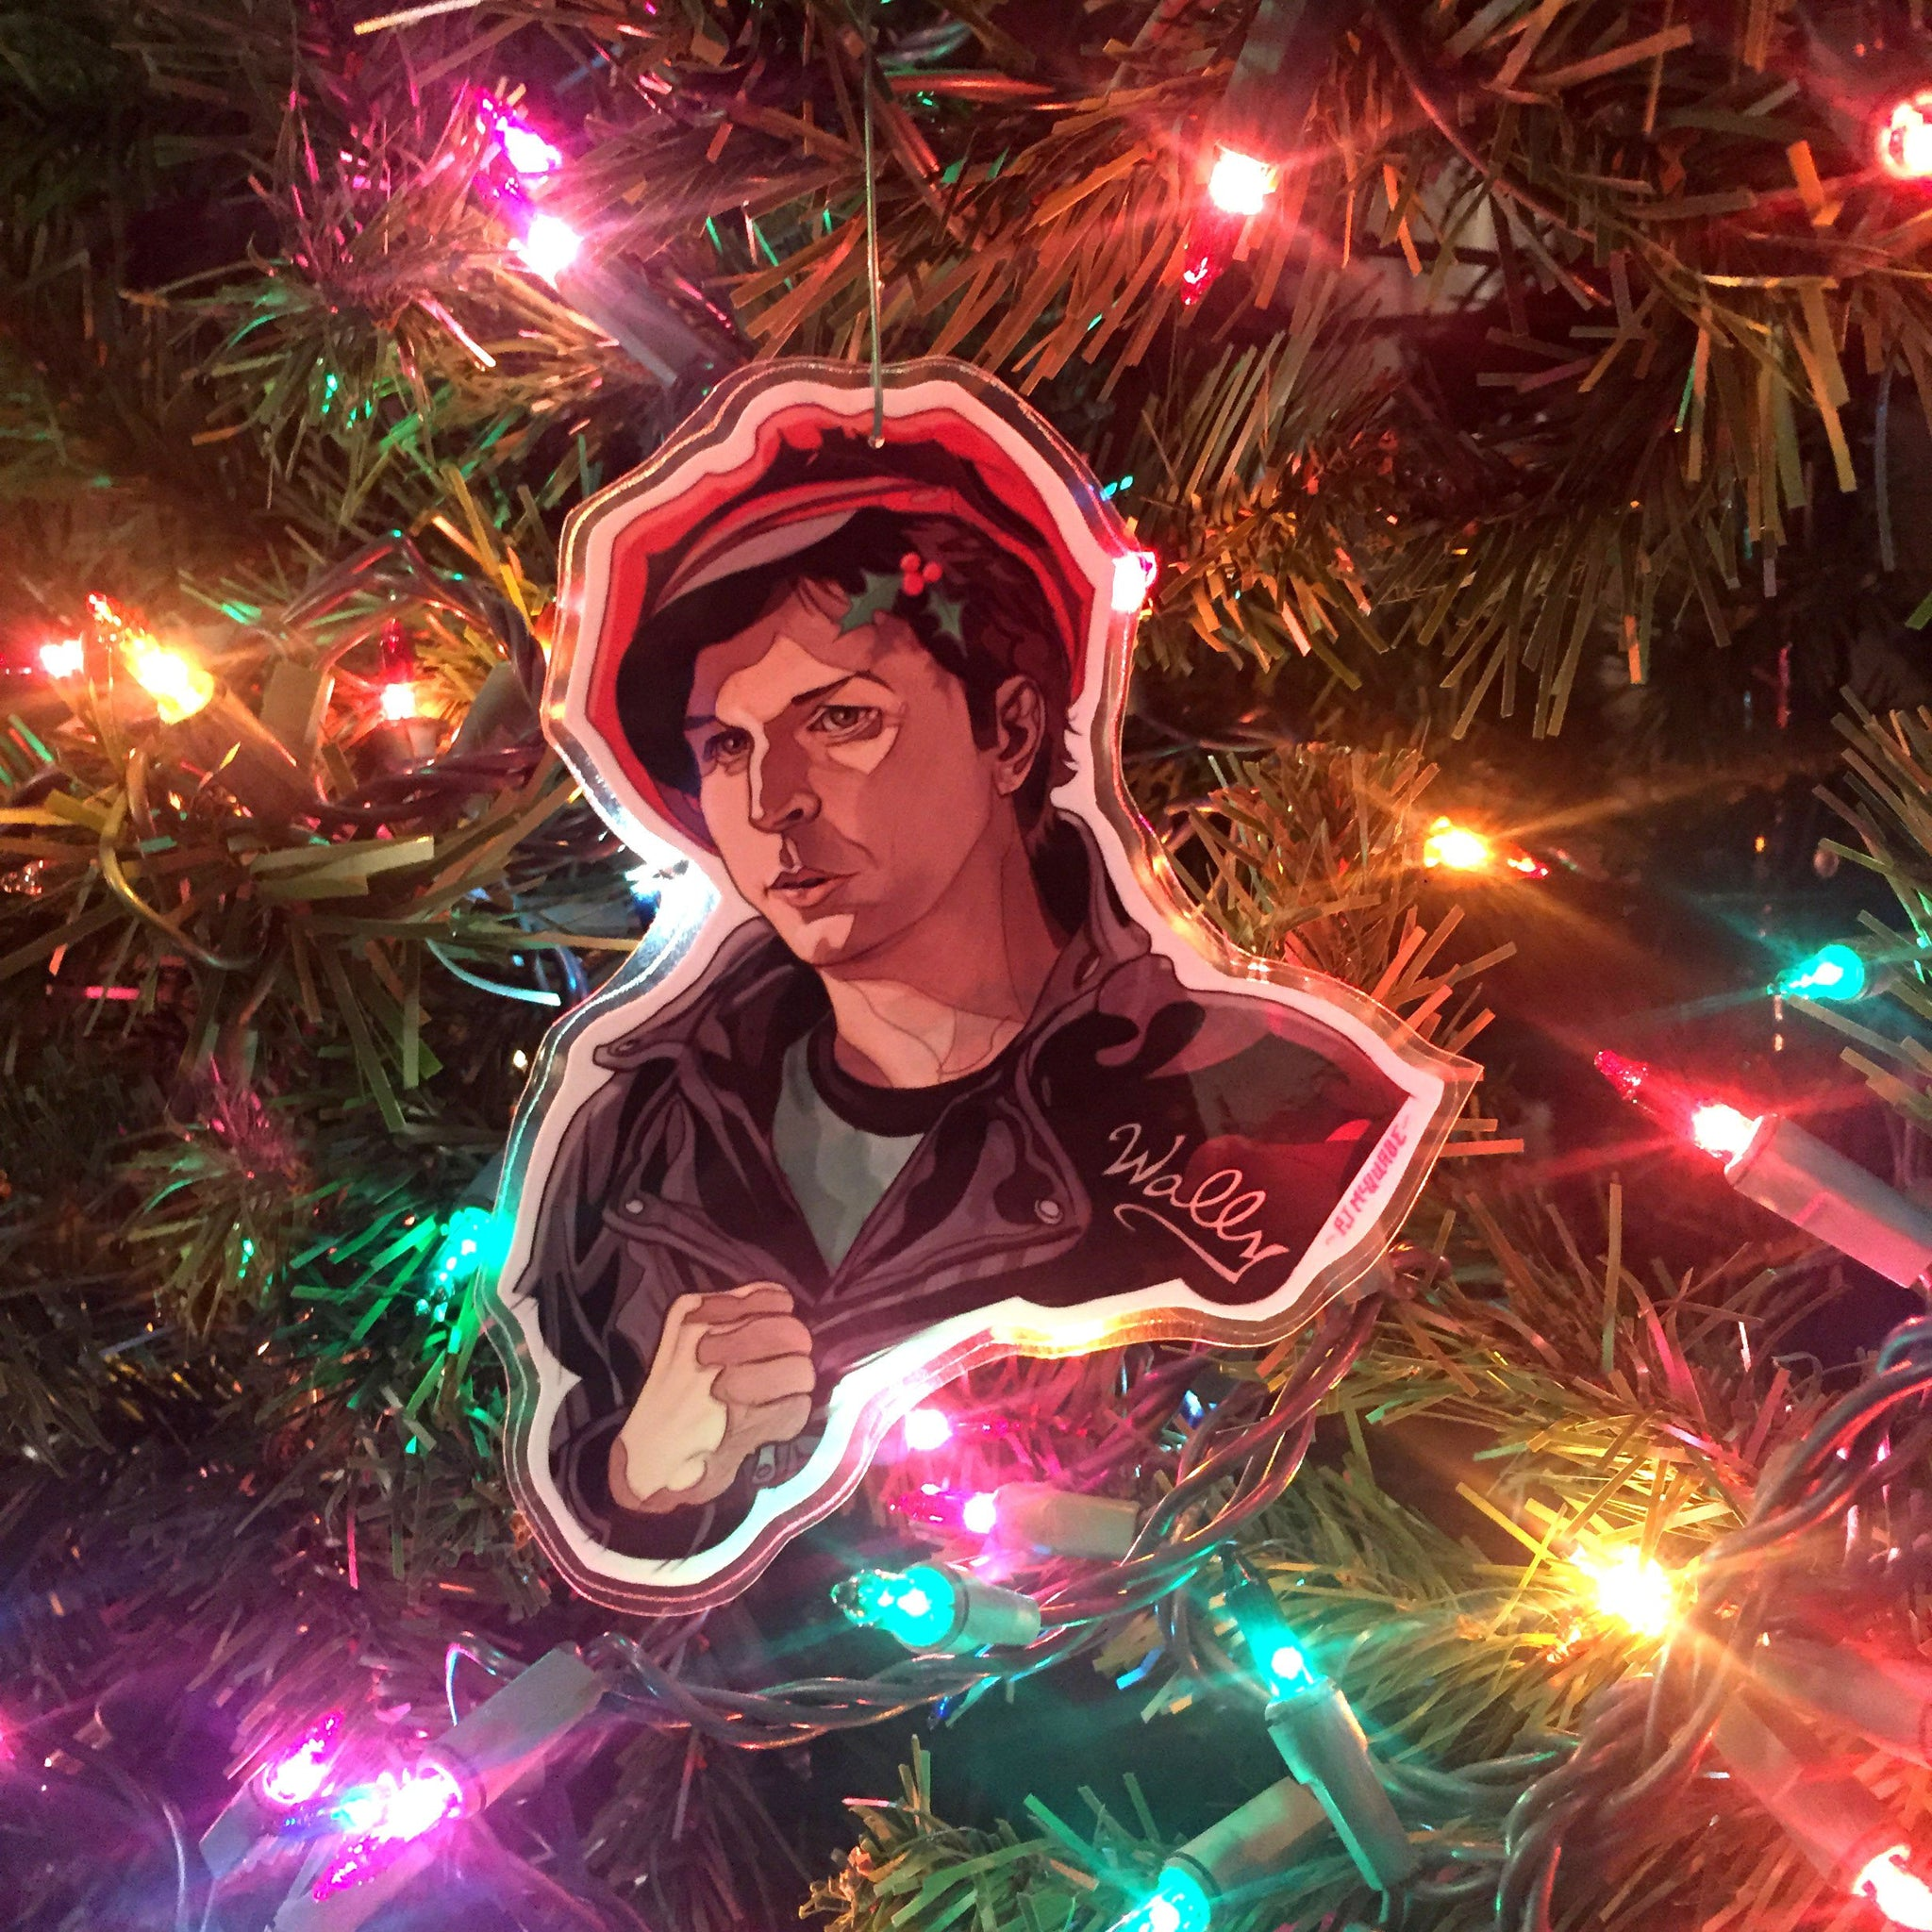 Wally Brando TWIN PEAKS Christmas ORNAMENT!